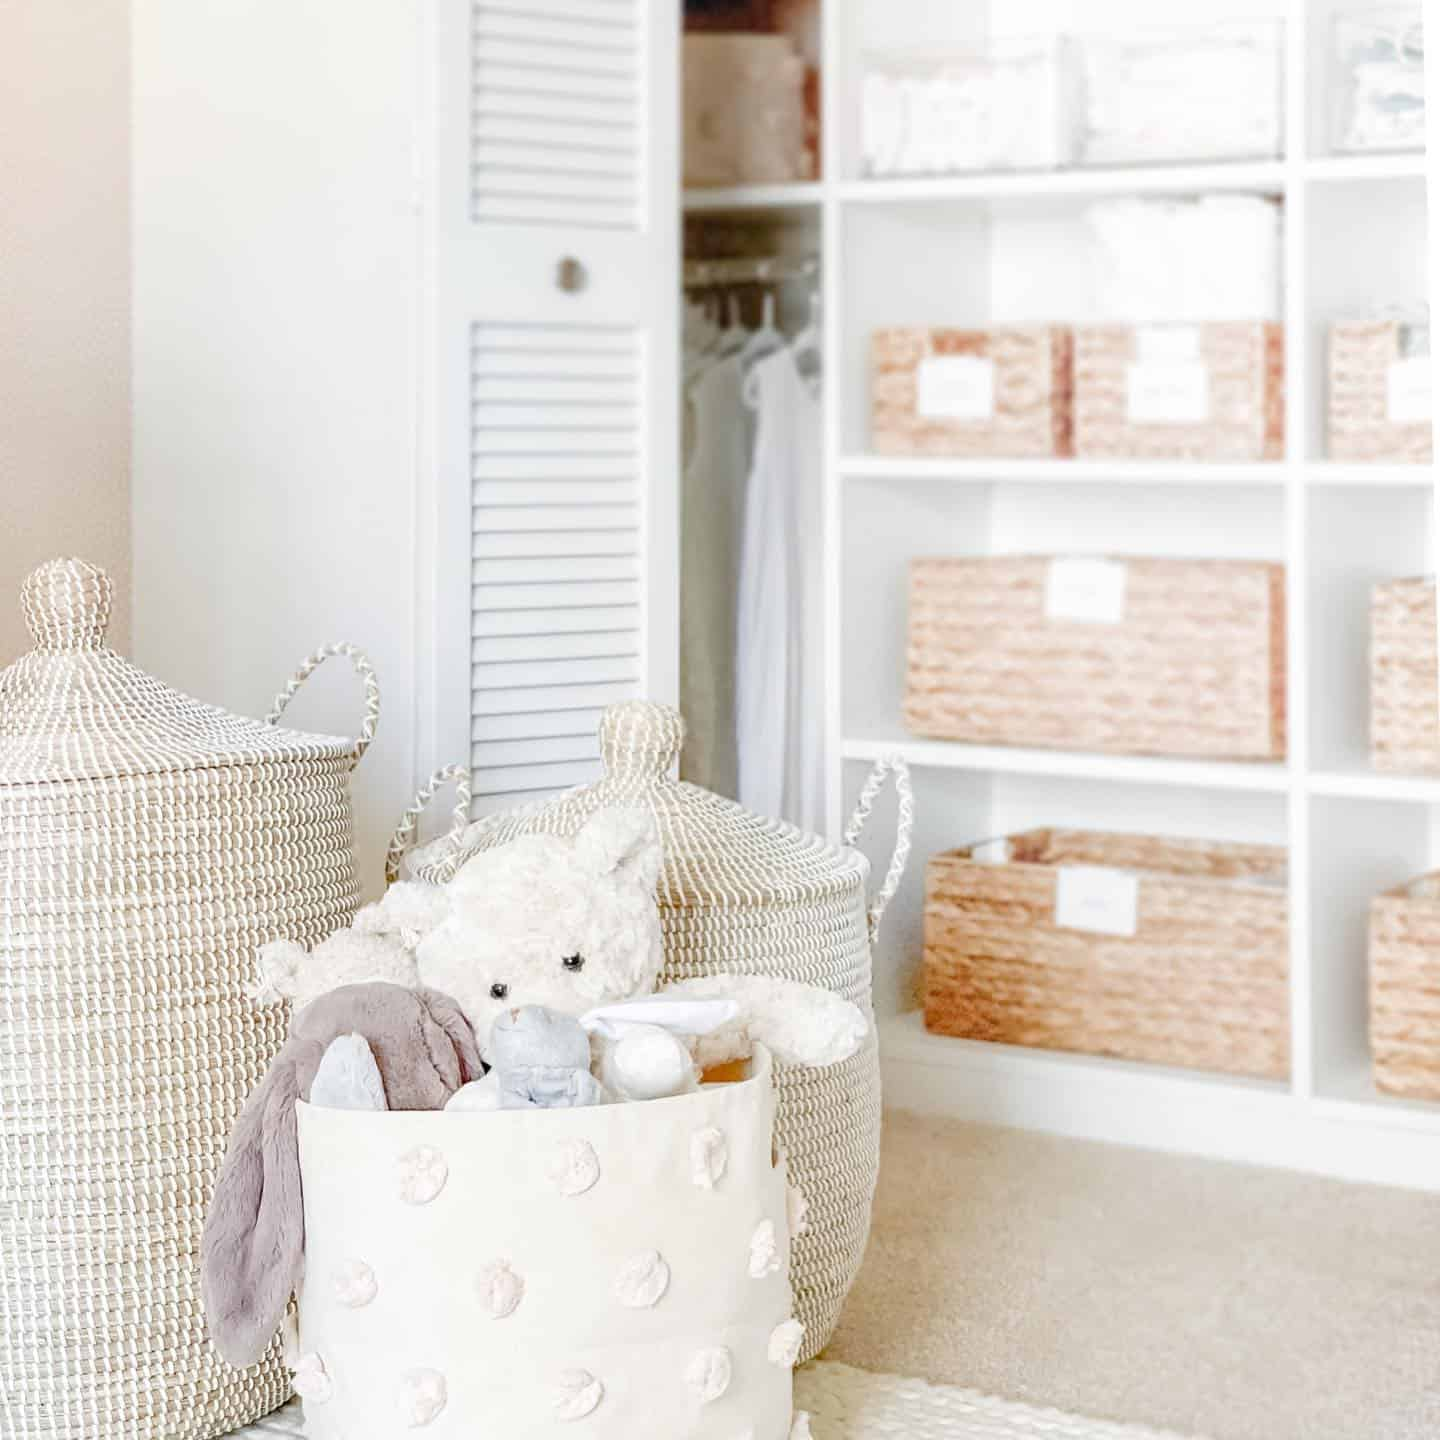 Baby bedroom with serena and lily storage baskets.  Closet with built in shelving and wicker baskets for organizing on the shelves.